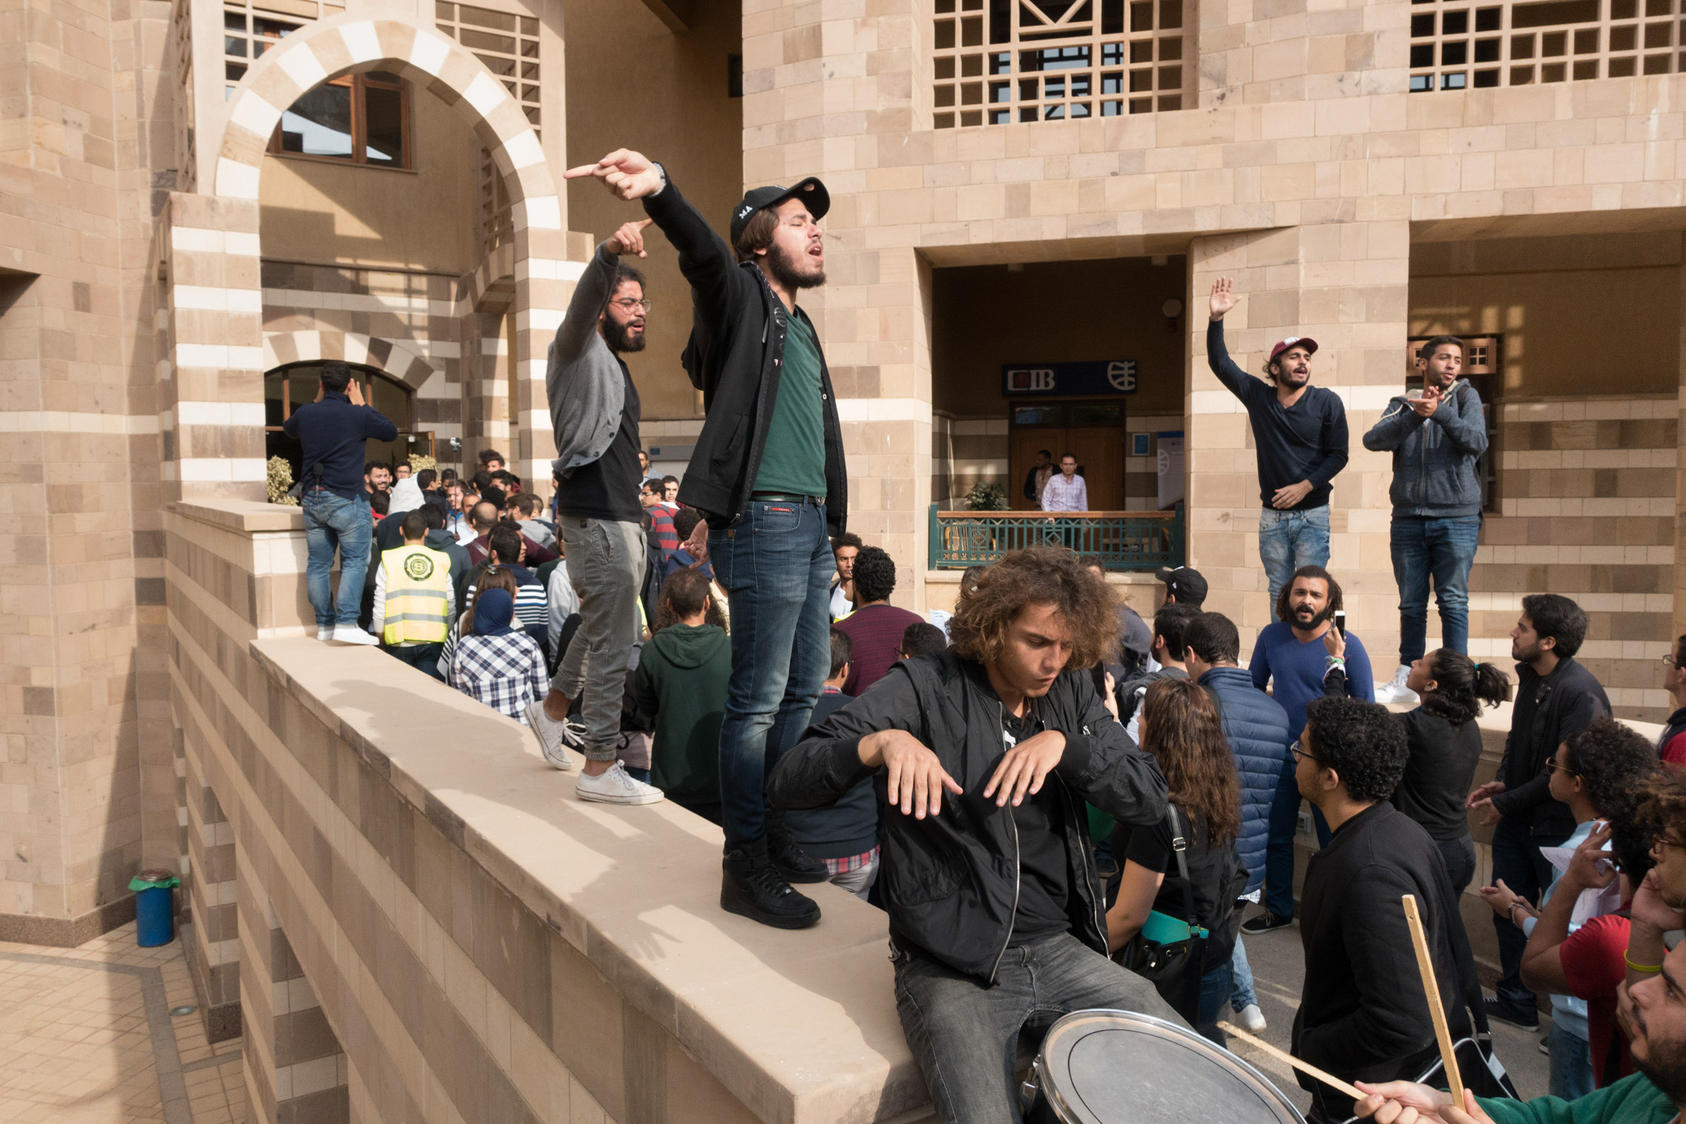 "Students protest at the American University of Cairo, demanding a cap to their tuition, in Cairo, Nov. 16, 2016. The demonstrations are the largest and longest-running at the elite institution in years. ""When the economic crisis hits the elite, it means the suffering is all over the place,"" said Malak Rostom, vice president of the student union. (David Degner/The New York Times)"